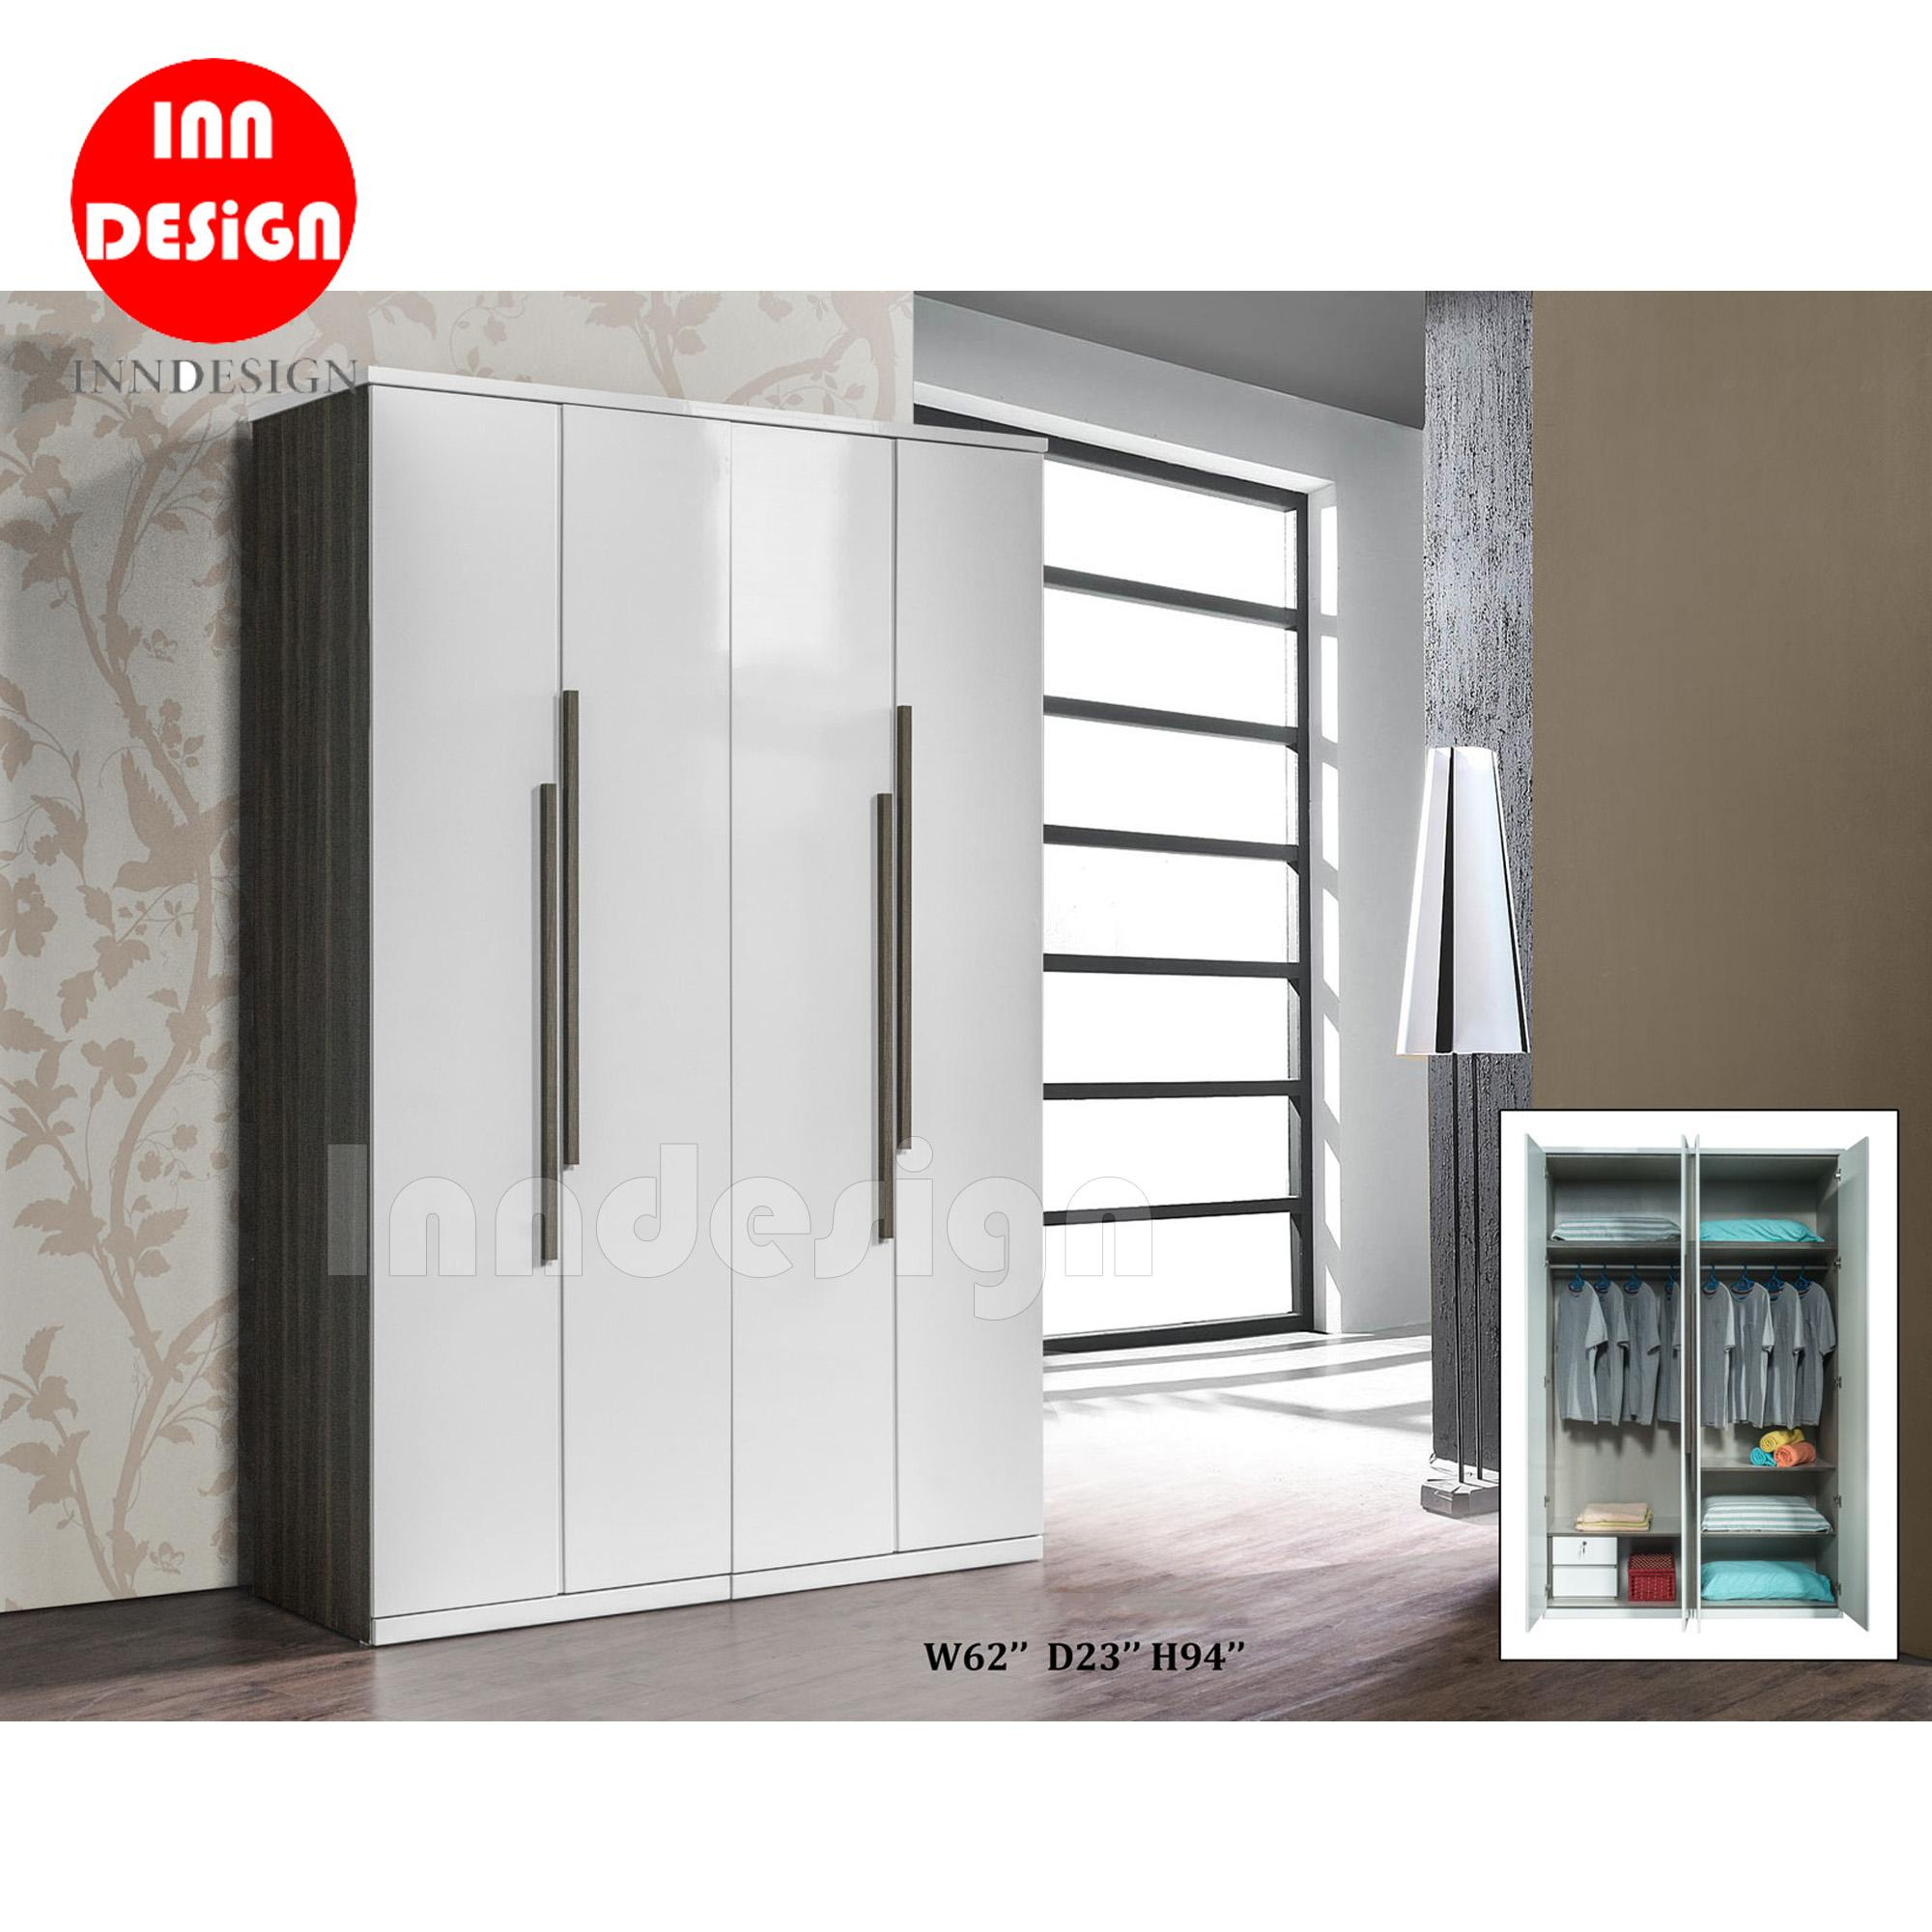 Nove 4 Doors Wardrobe (Free Delivery and Installation)